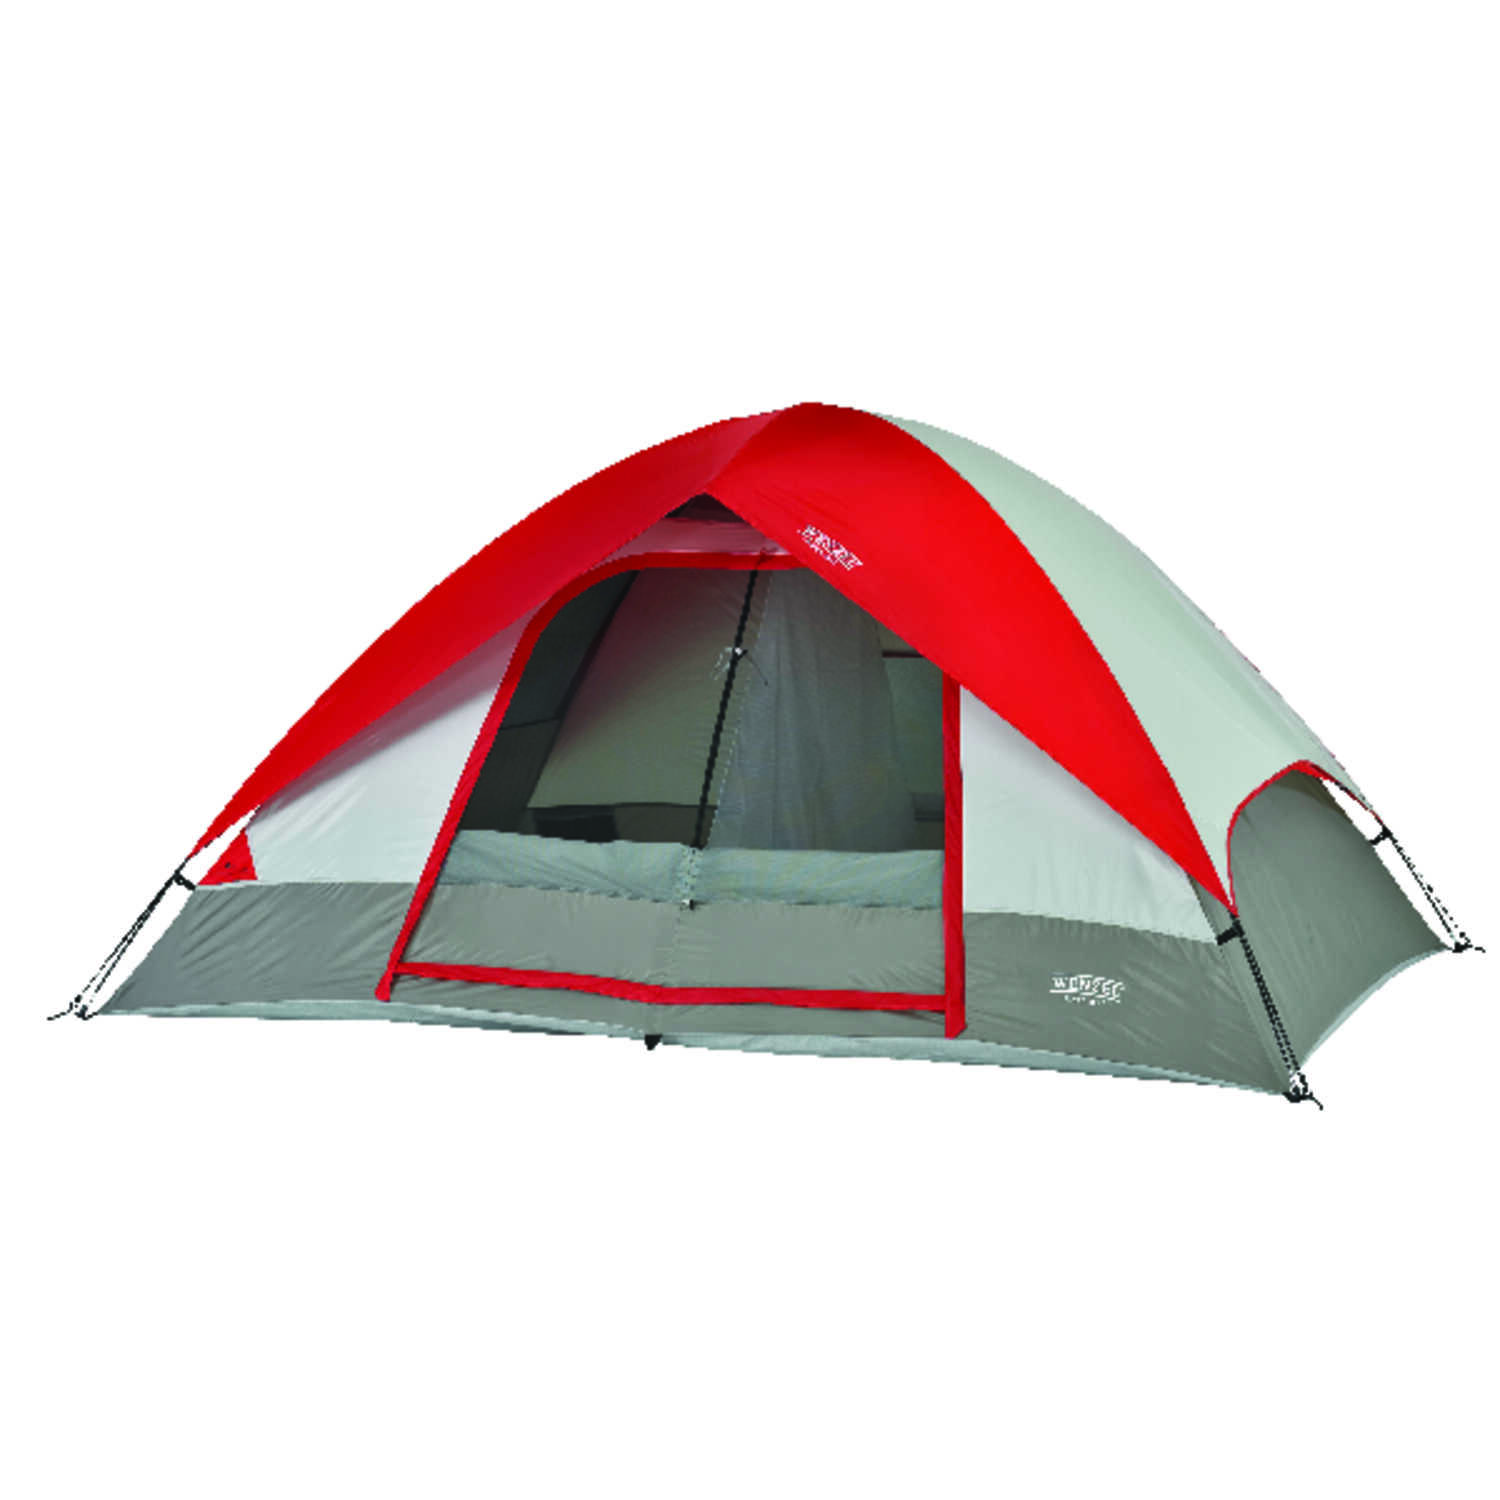 Wenzel  Gray/Red  Tent  60 in. H x 84 in. W x 120 in. L